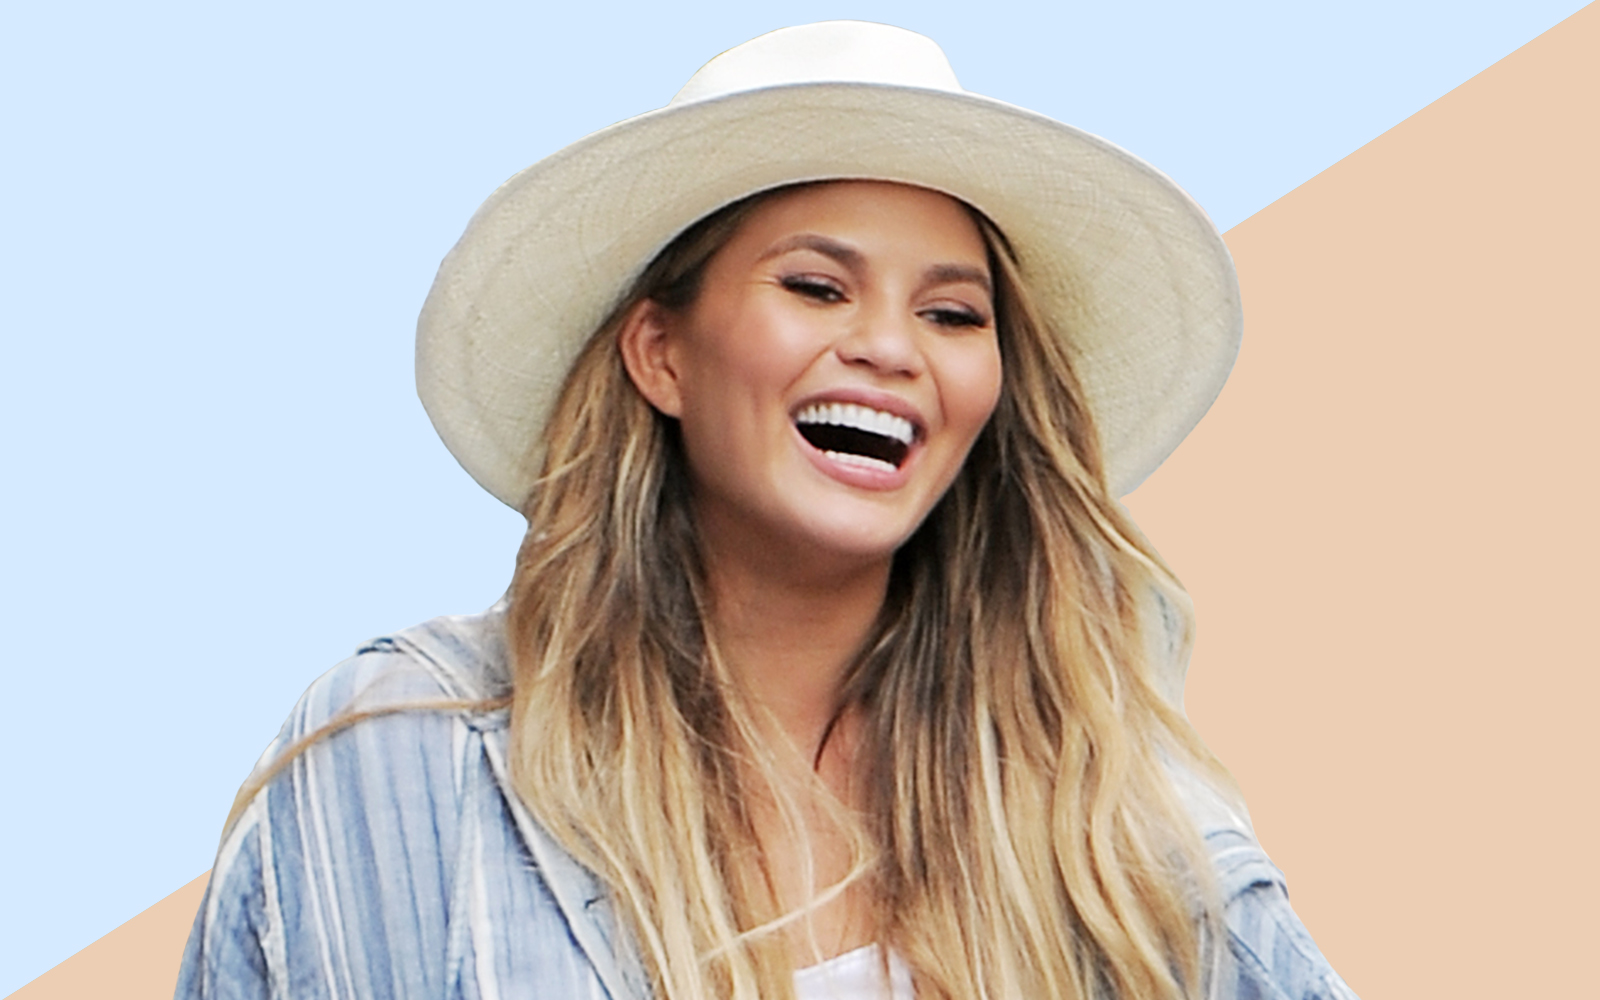 5 Perfect Summer Hats From Chrissy Teigen's Favorite Brand